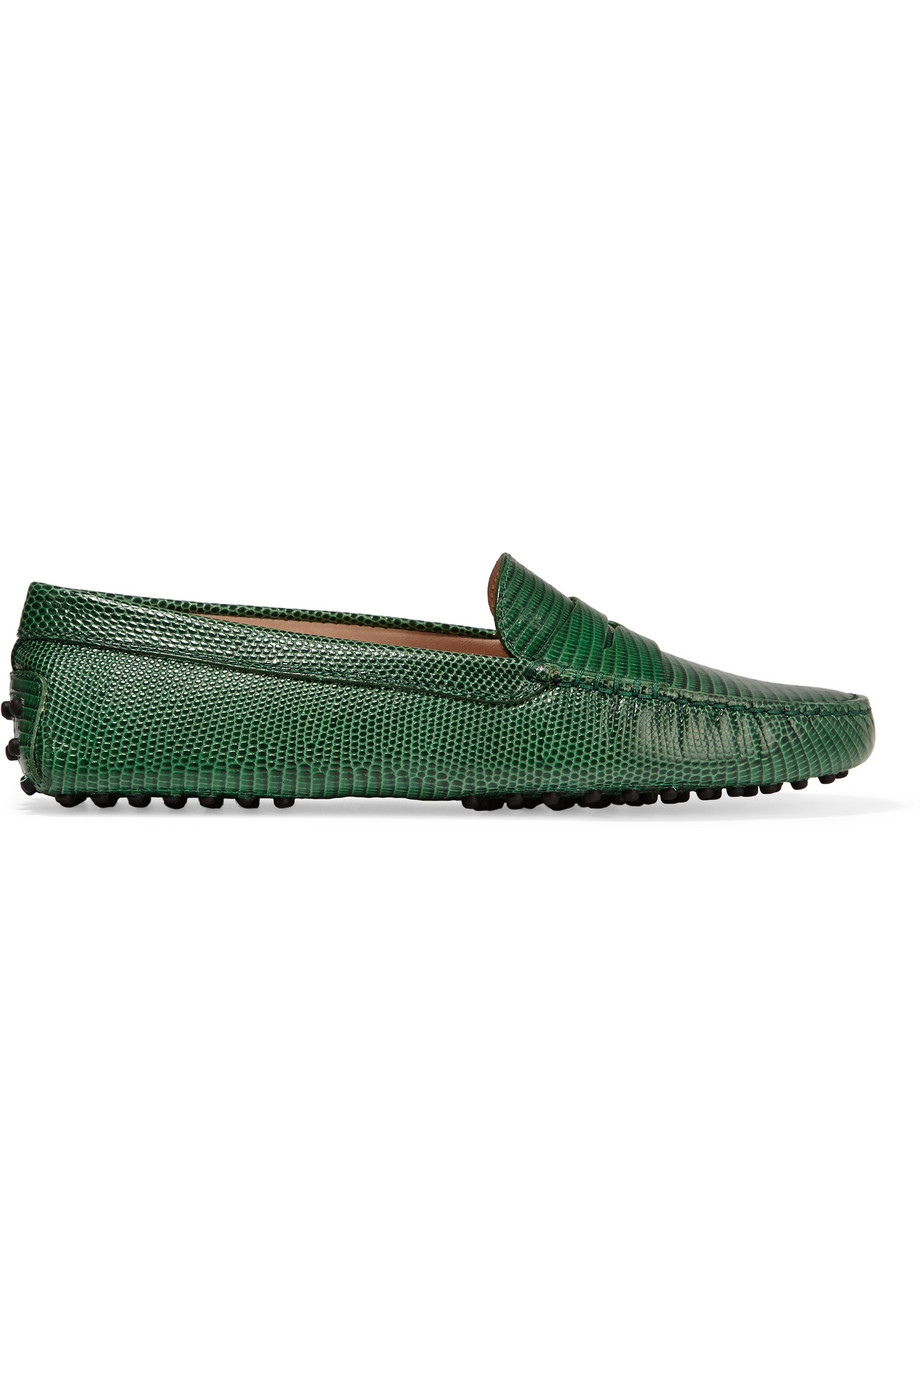 Tod's Gommino Lizard-Effect Leather Loafers, Forest Green, Women's US Size: 5.5, Size: 36